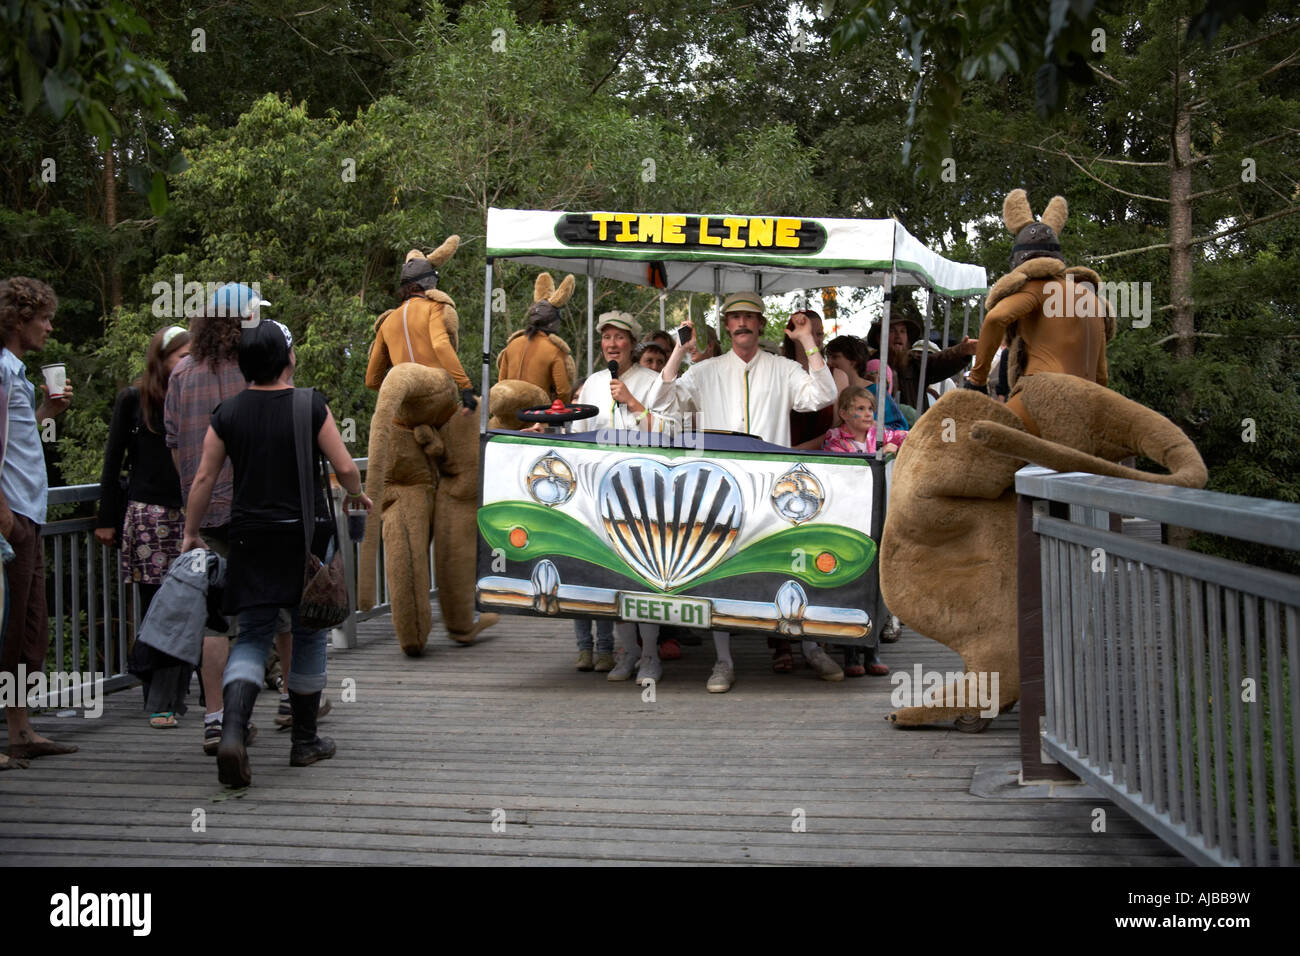 Designer Schreibtisch Kota Woodman Oz Bus Stock Photos And Oz Bus Stock Images Alamy